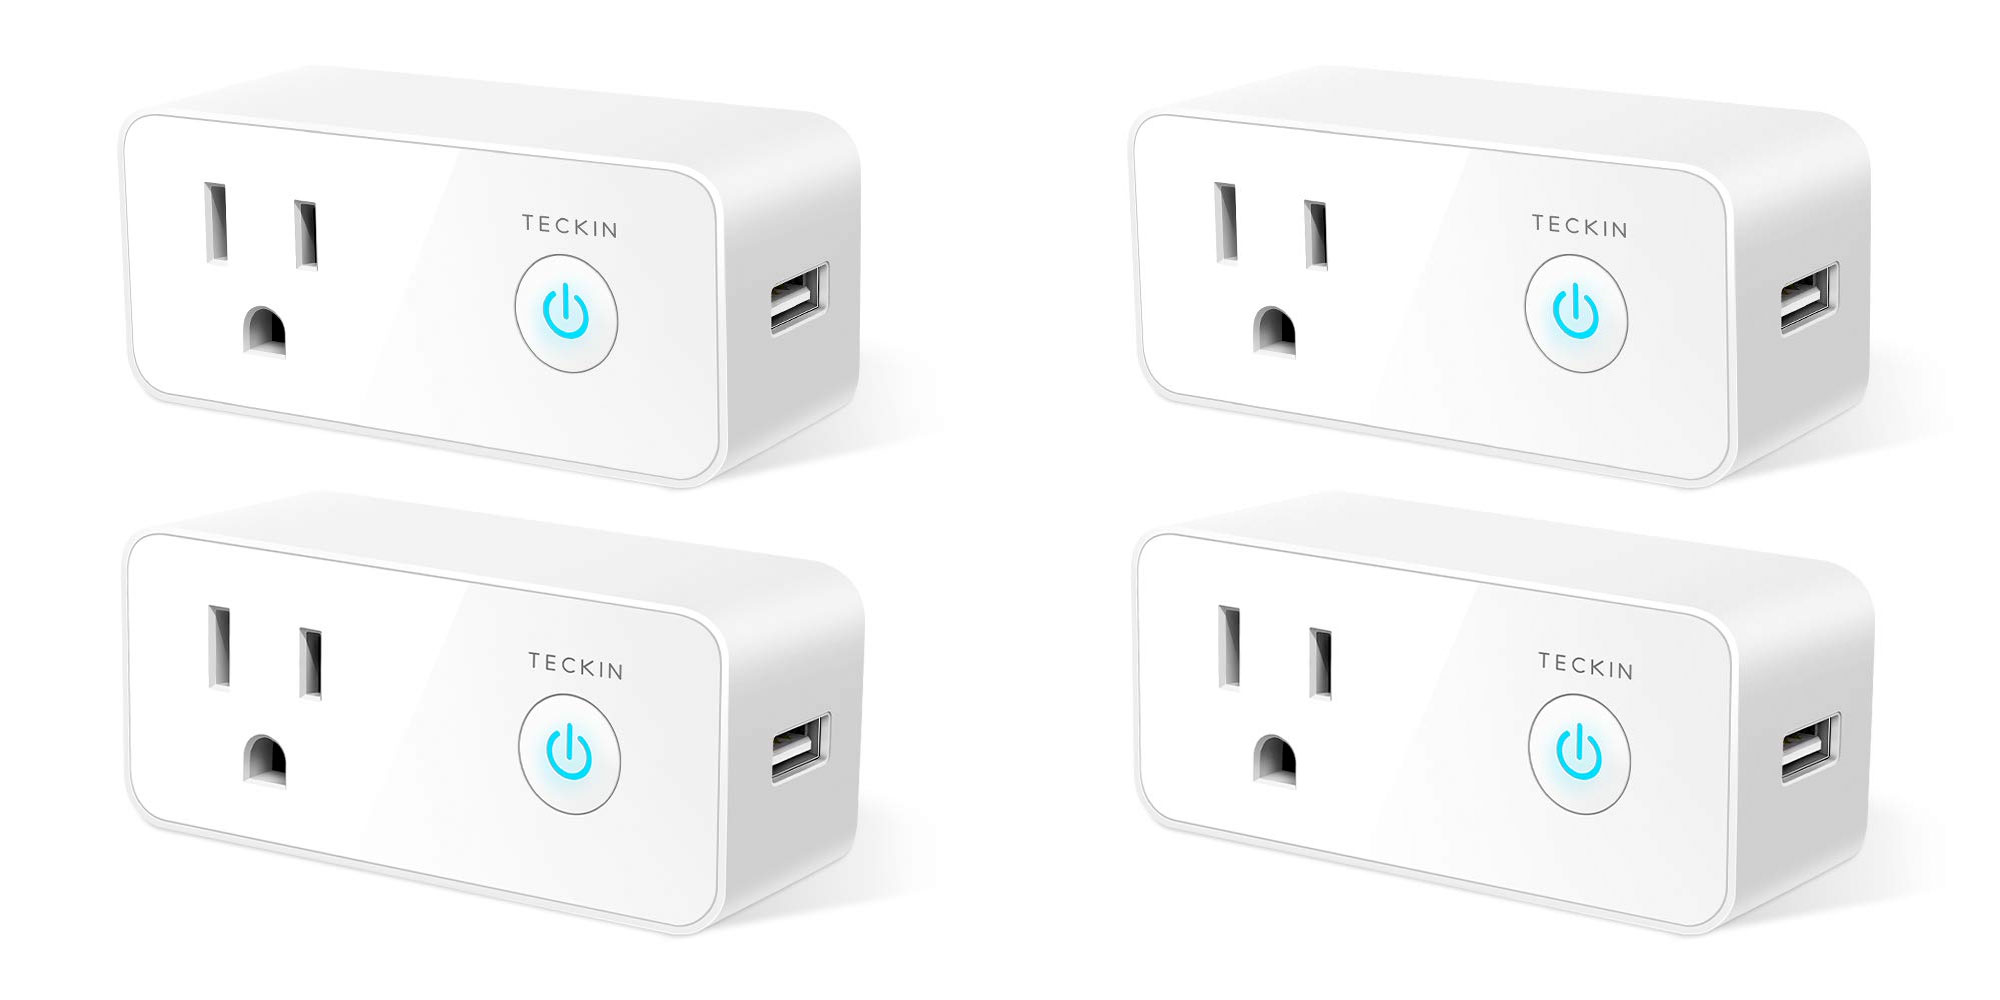 This smart plug packs a 2 1A USB port, works with Alexa